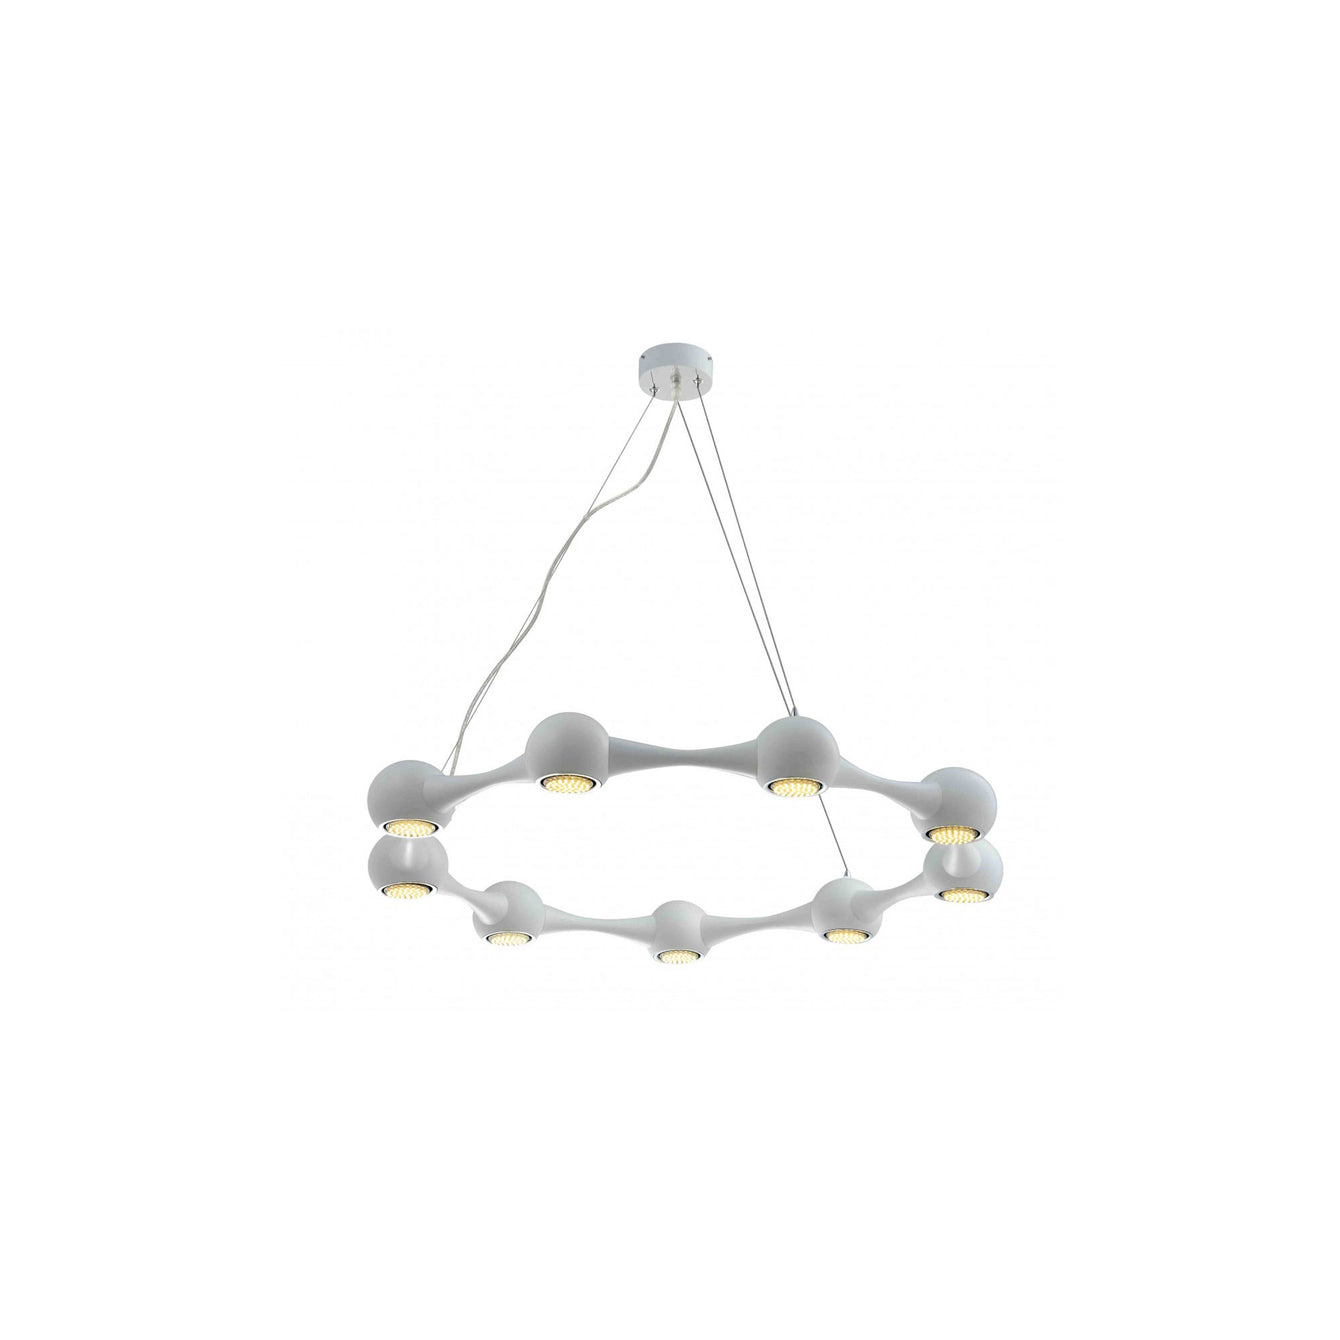 Perivale 3, 5, 6, 9 and 12 Arm Pendant LED Light White - Buy It Better